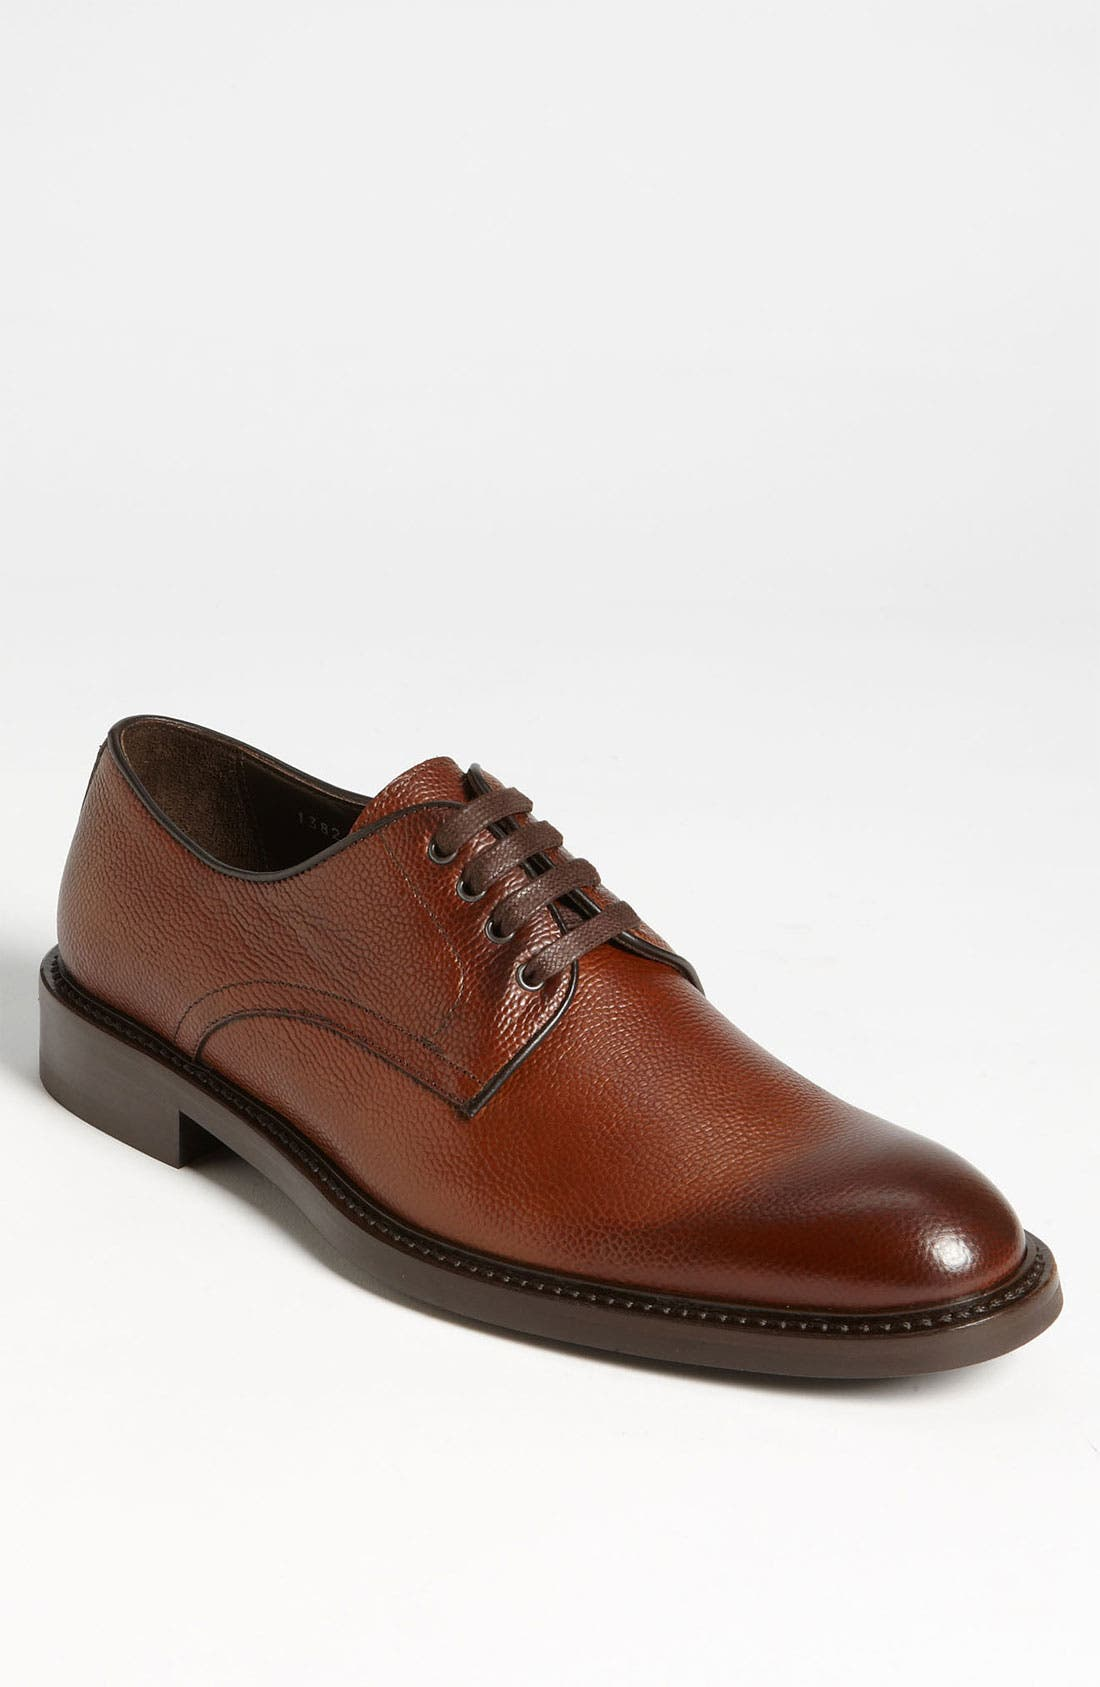 Main Image - To Boot New York 'Clark' Plain Toe Derby